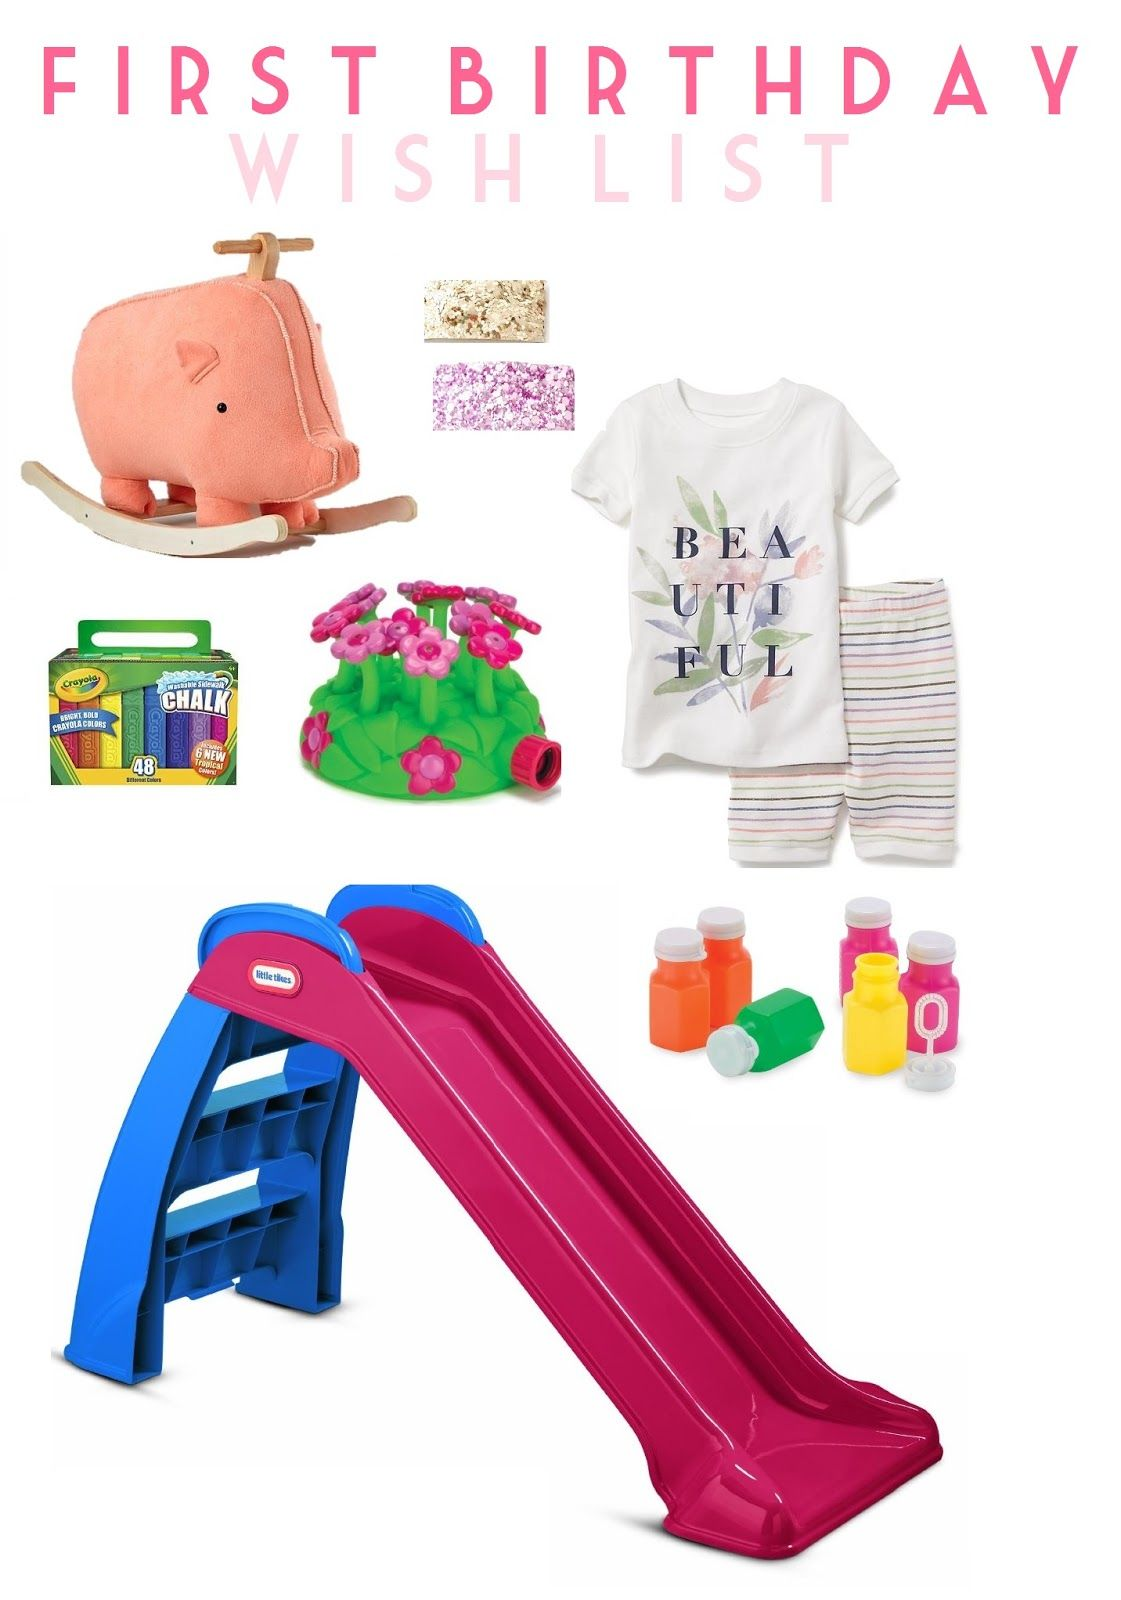 First birthday gift ideas life as a noel blog first